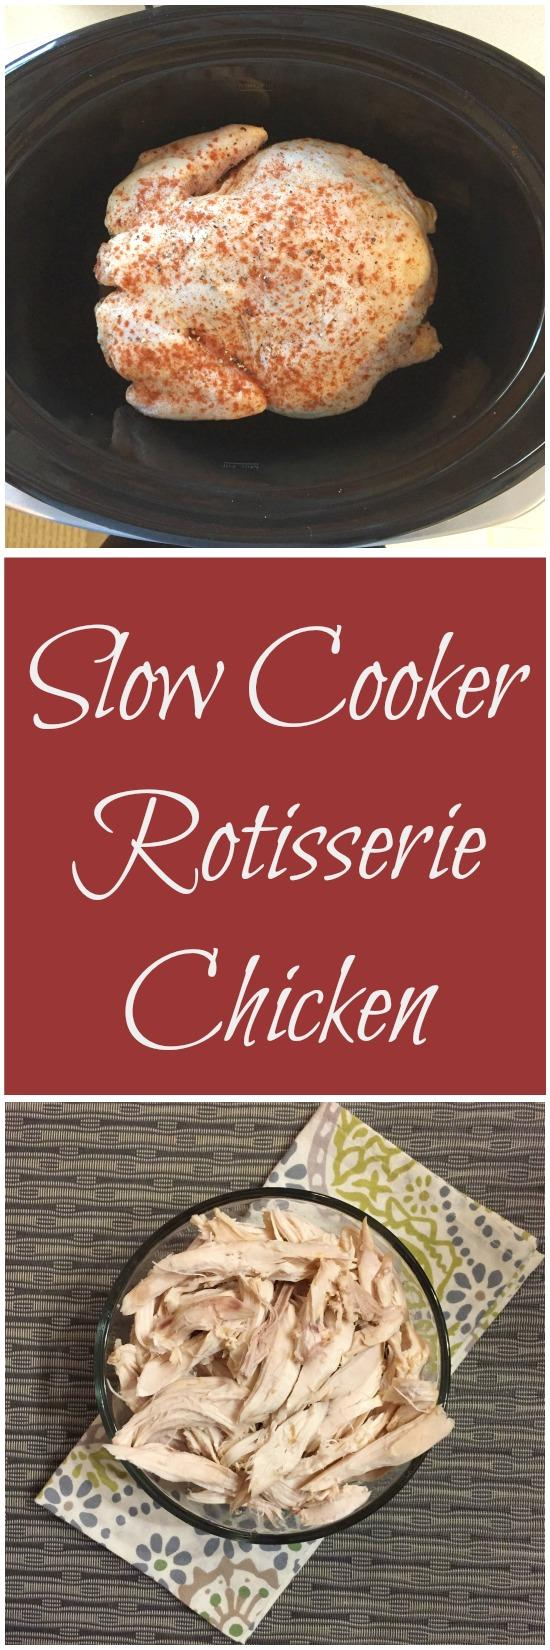 Did you know you can make a rotisserie-style chicken in your crockpot? It's an inexpensive, easy way to prep chicken you can use in a variety of other recipes!